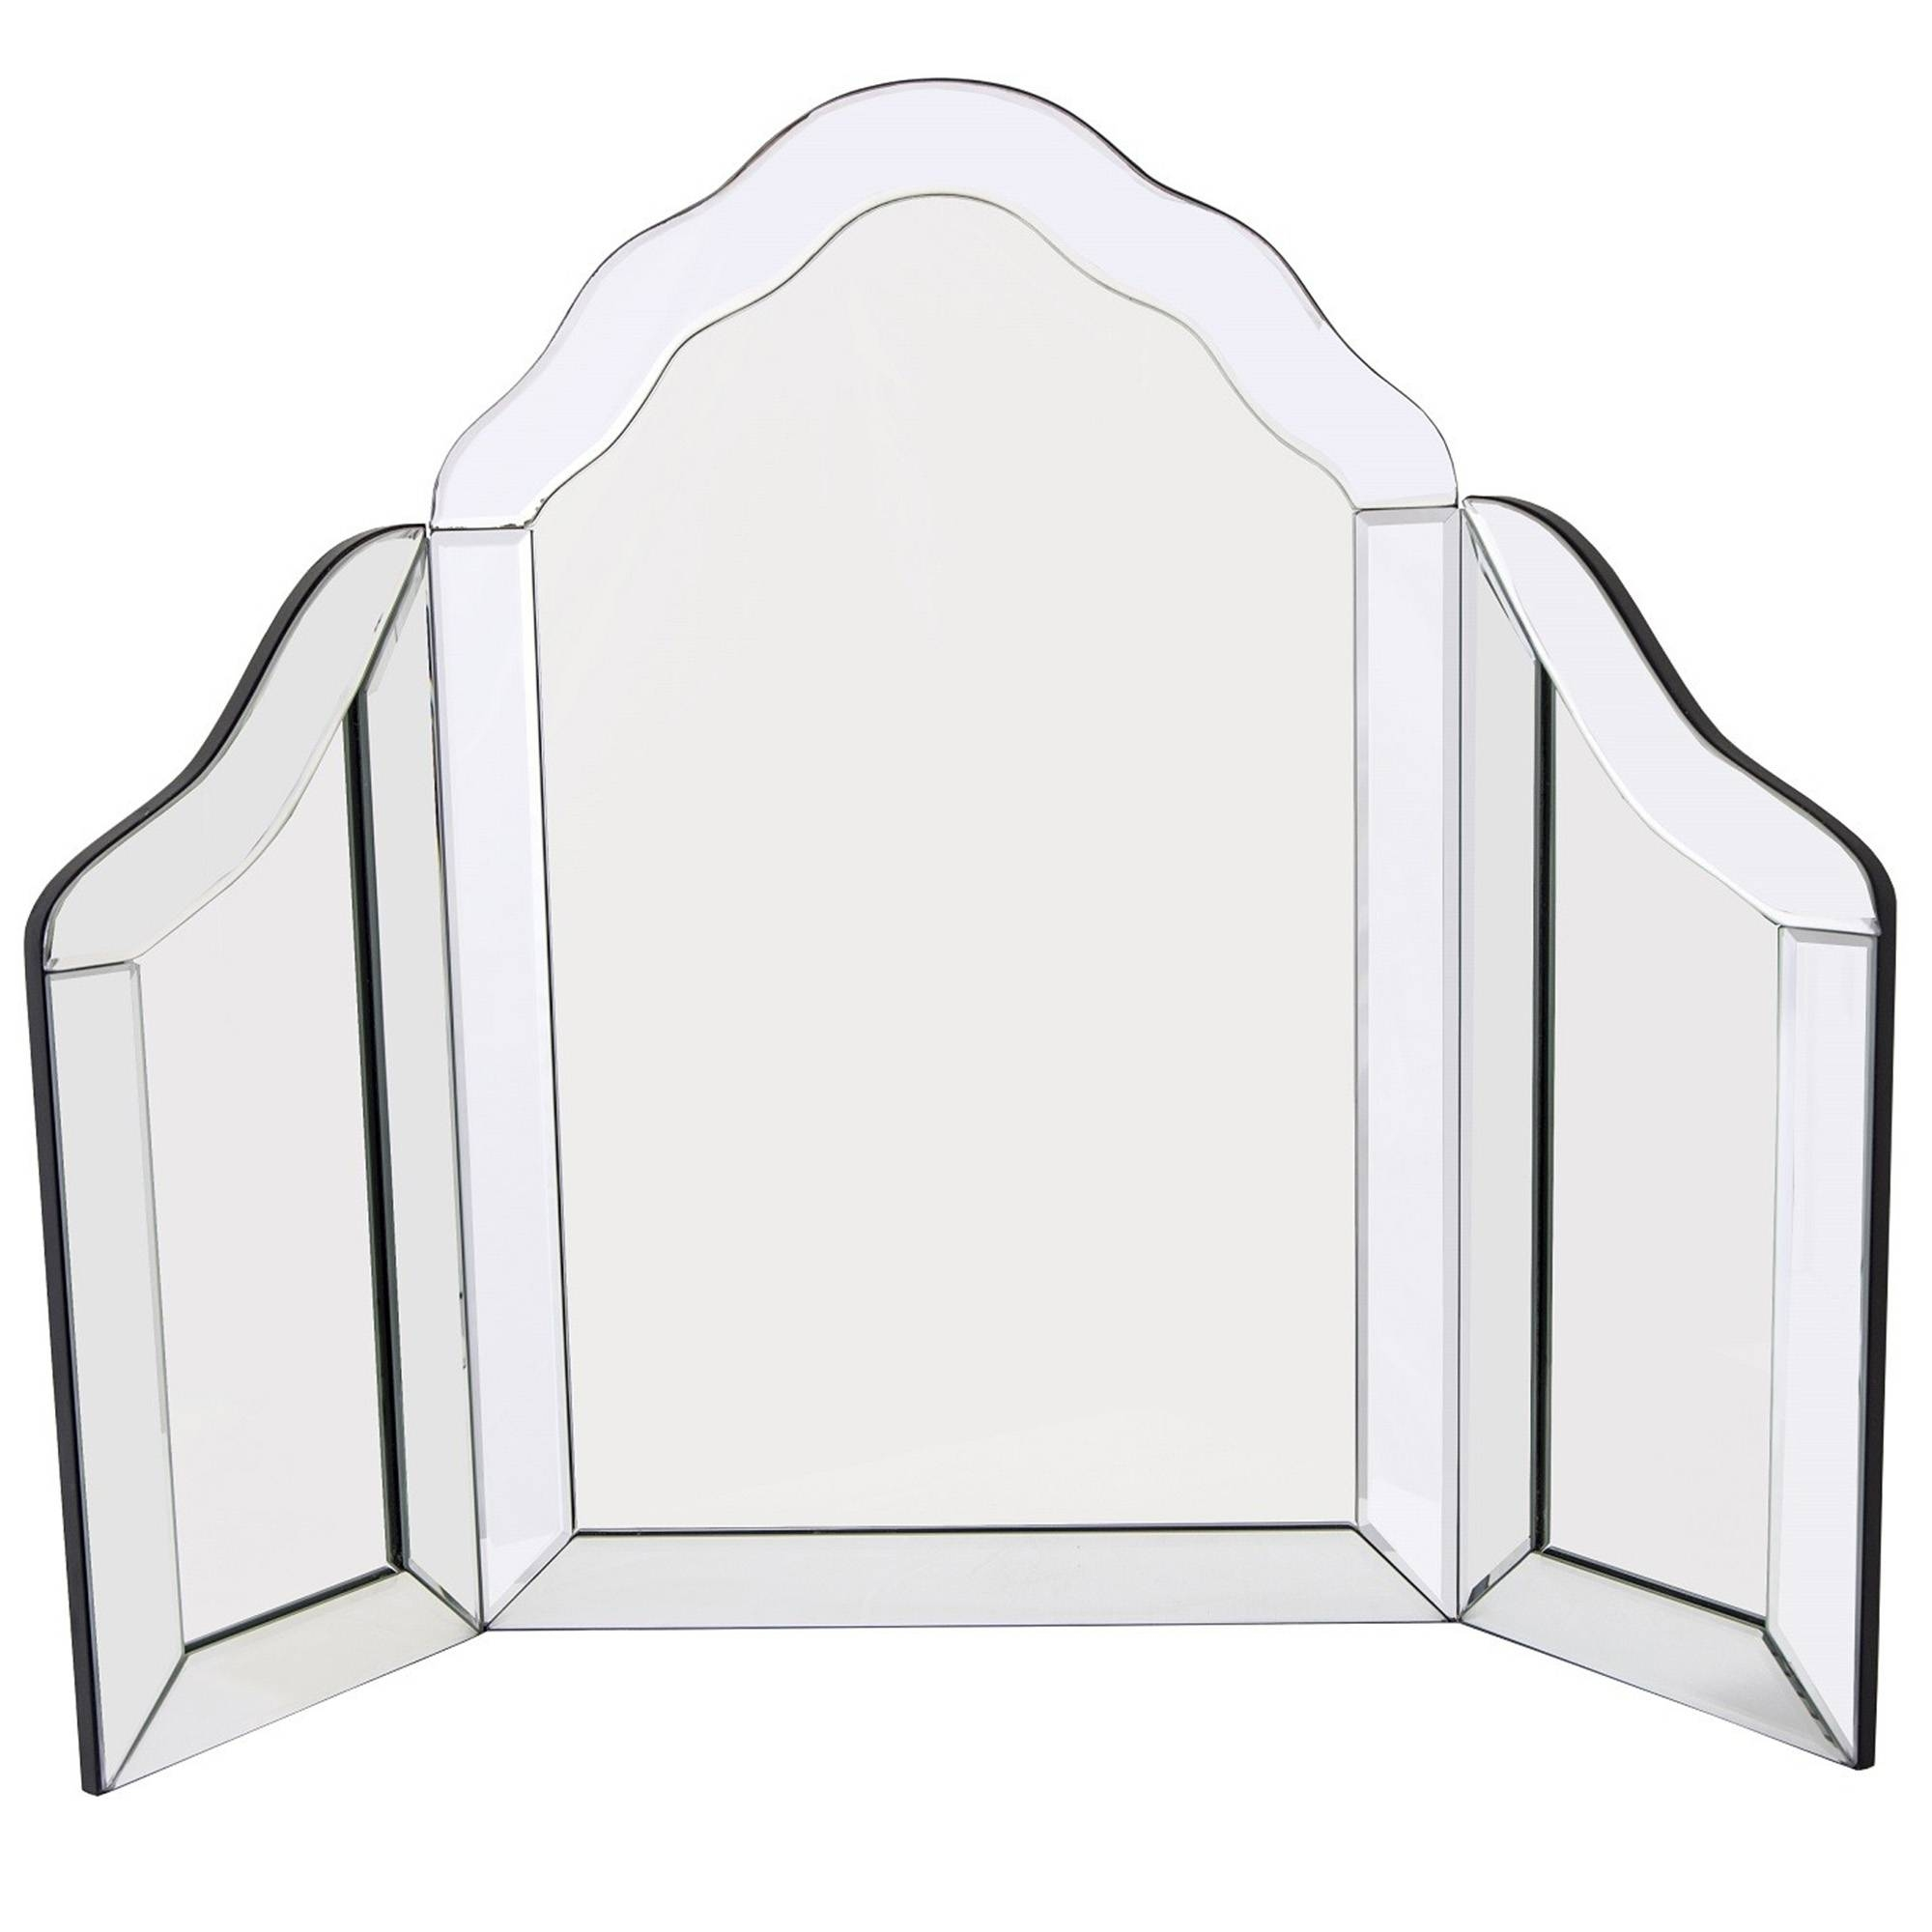 Venetian Dressing Table Mirror - French Furniture From Homesdirect intended for Venetian Dressing Table Mirrors (Image 6 of 15)